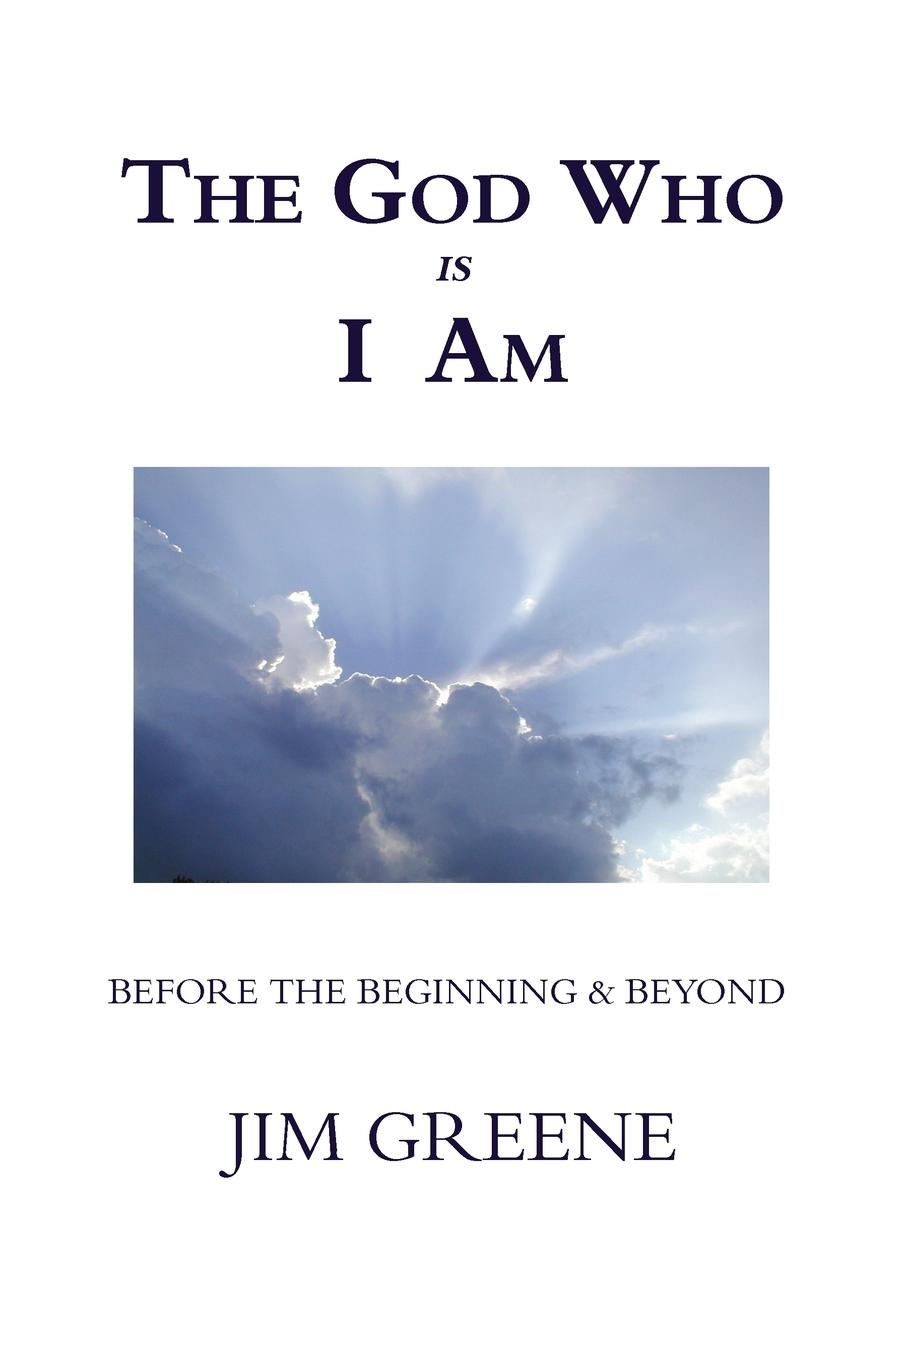 Jim Greene The God Who is I Am bakunin mikhail aleksandrovich god and the state